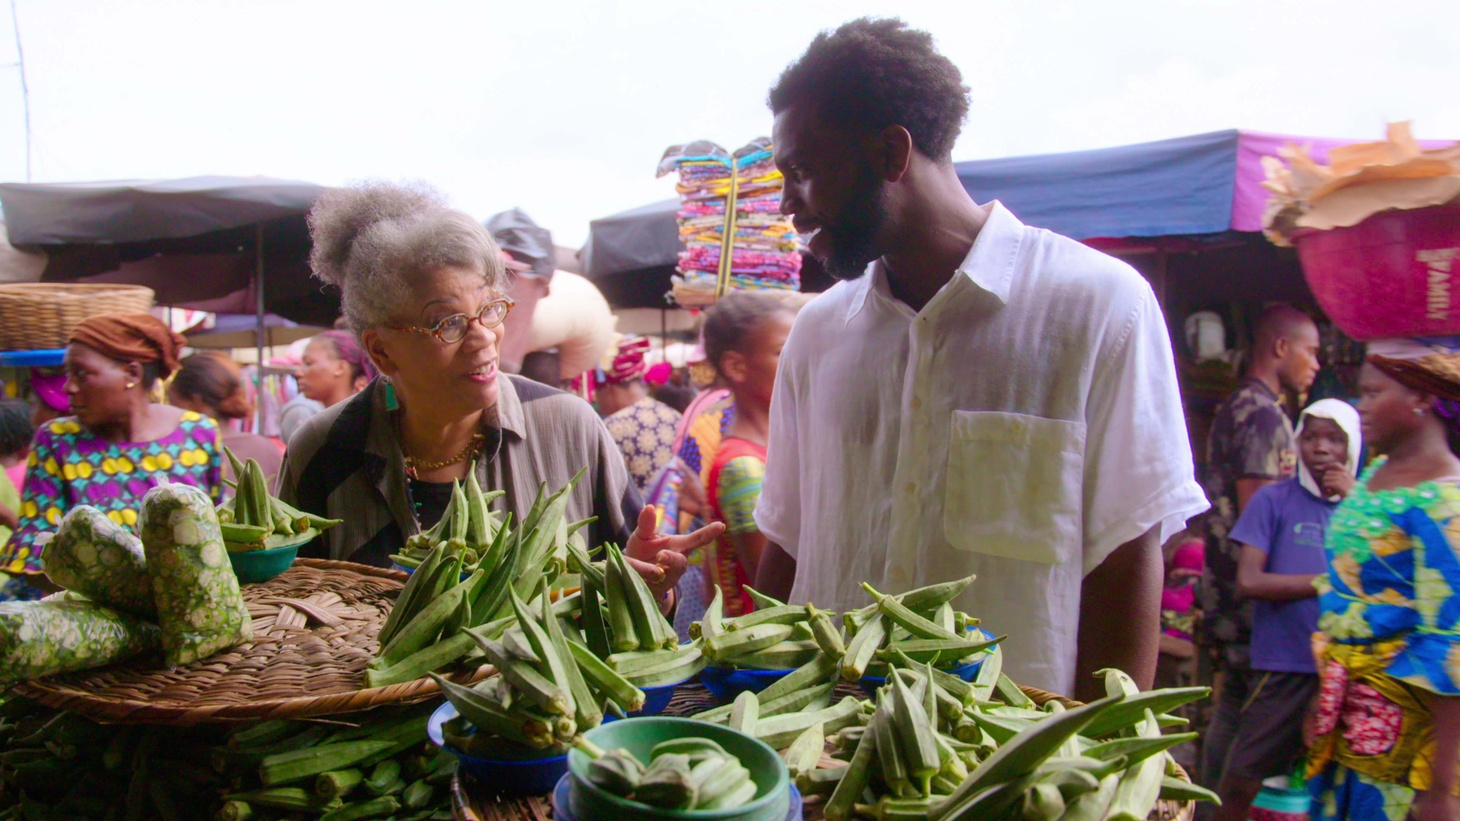 """Jessica B. Harris guides Stephen Satterfield through the market in Benin in the first episode of """"High on the Hog,"""" an adaptation of her book by the same name."""